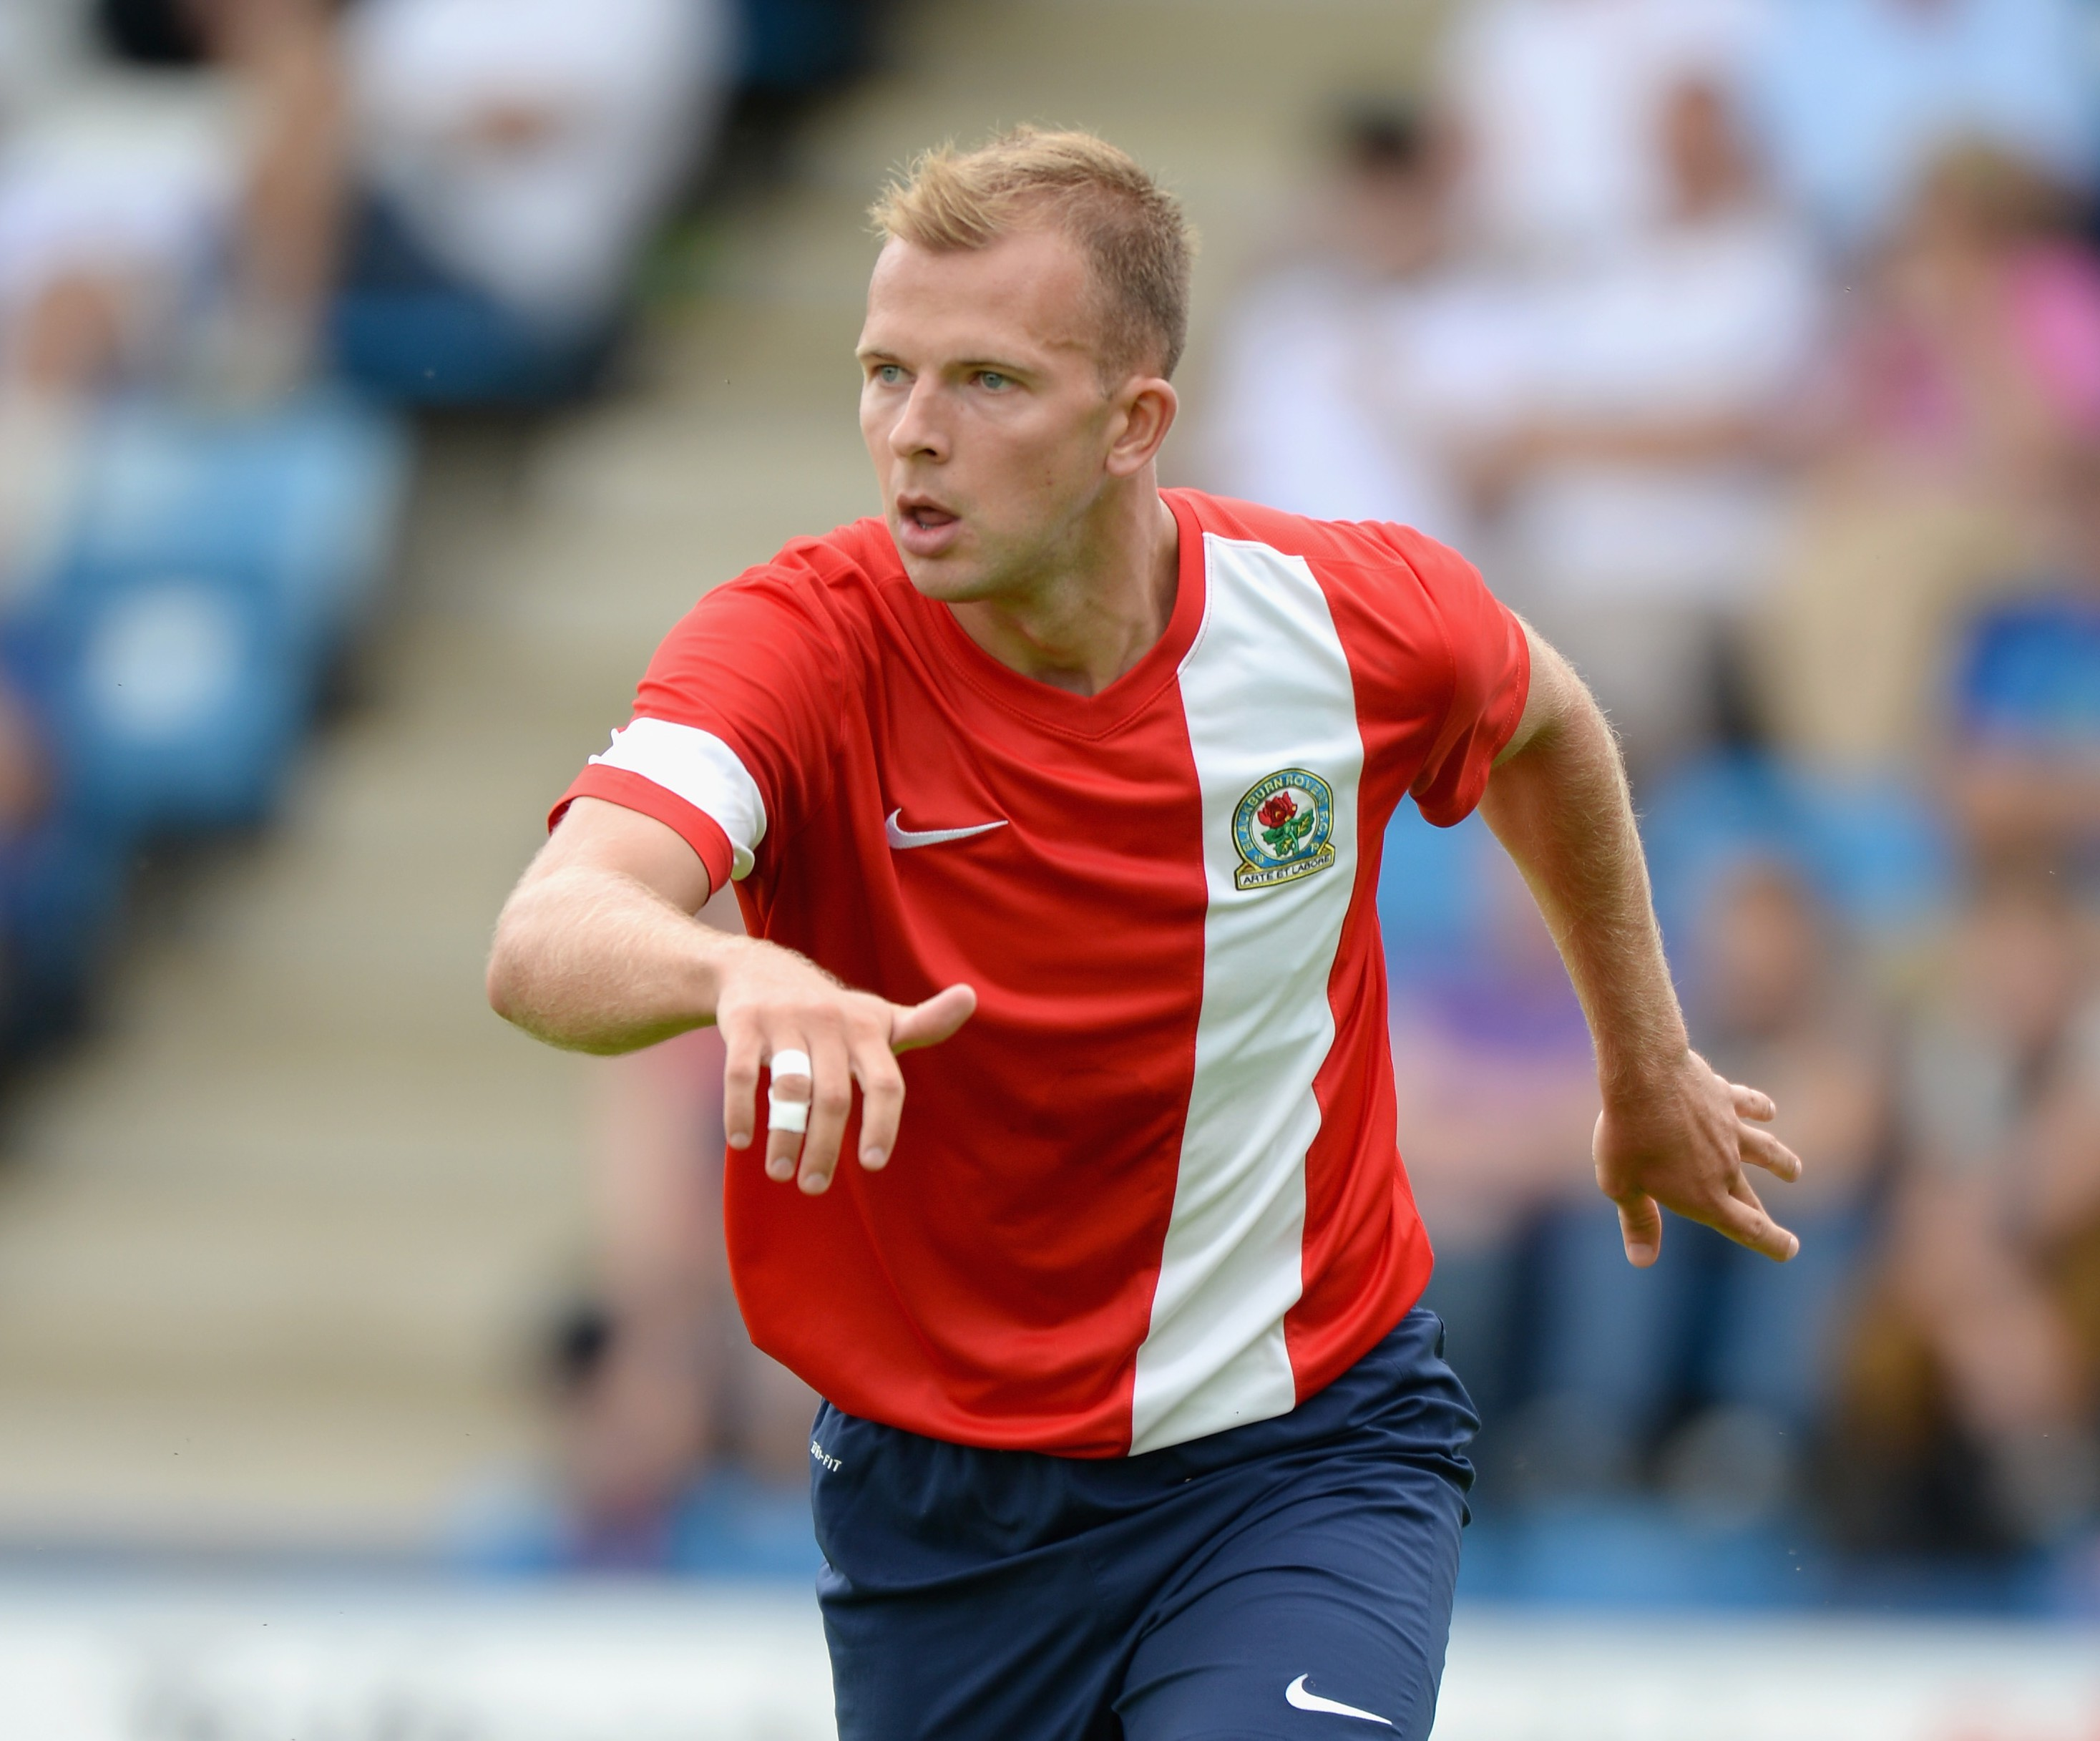 AFC Telford United v Blackburn Rovers - Pre Season Friendly